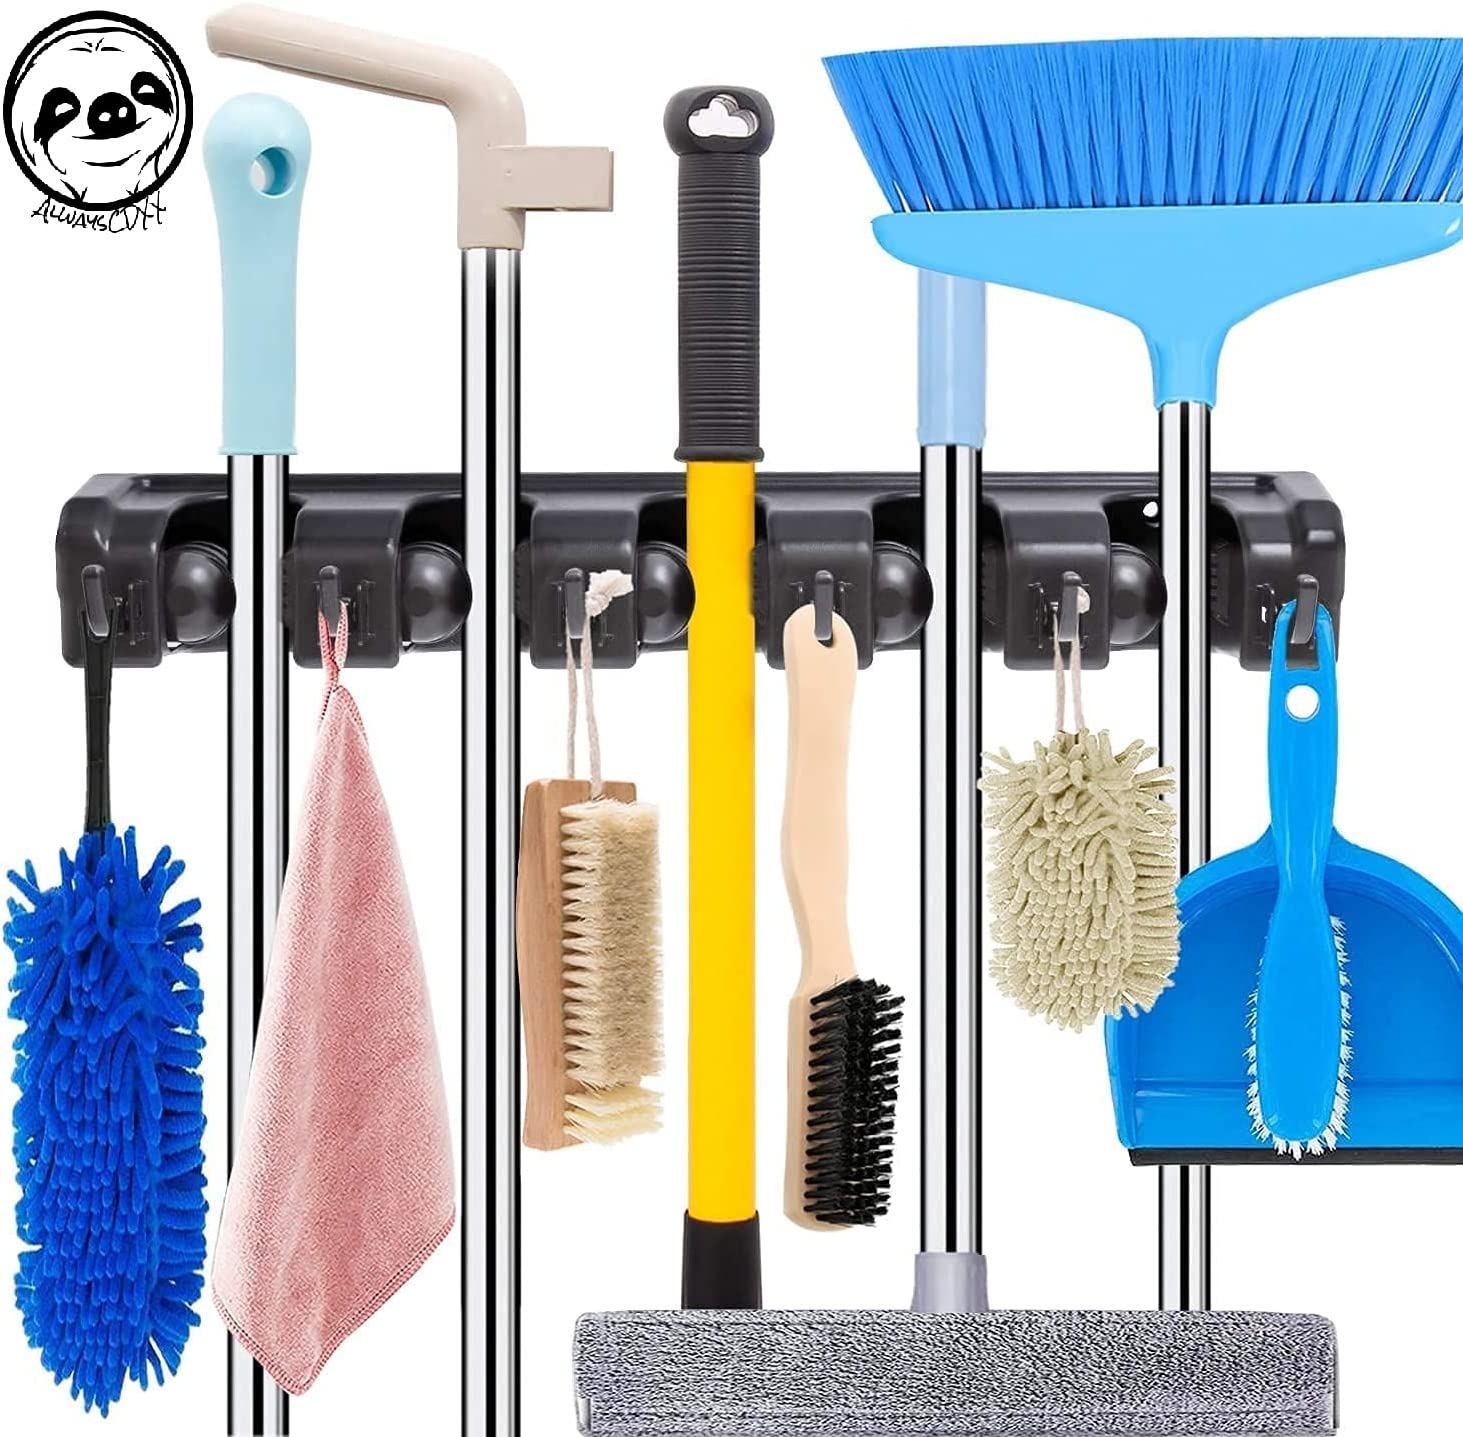 Mop and Broom Holder Wall Mount Heavy Duty Broom Holder Wall Mounted Broom Organizer Home Garden Garage Storage Rack Indoor/Outdoor Handles Up to 1.25-Inches, 1 Pack, Black